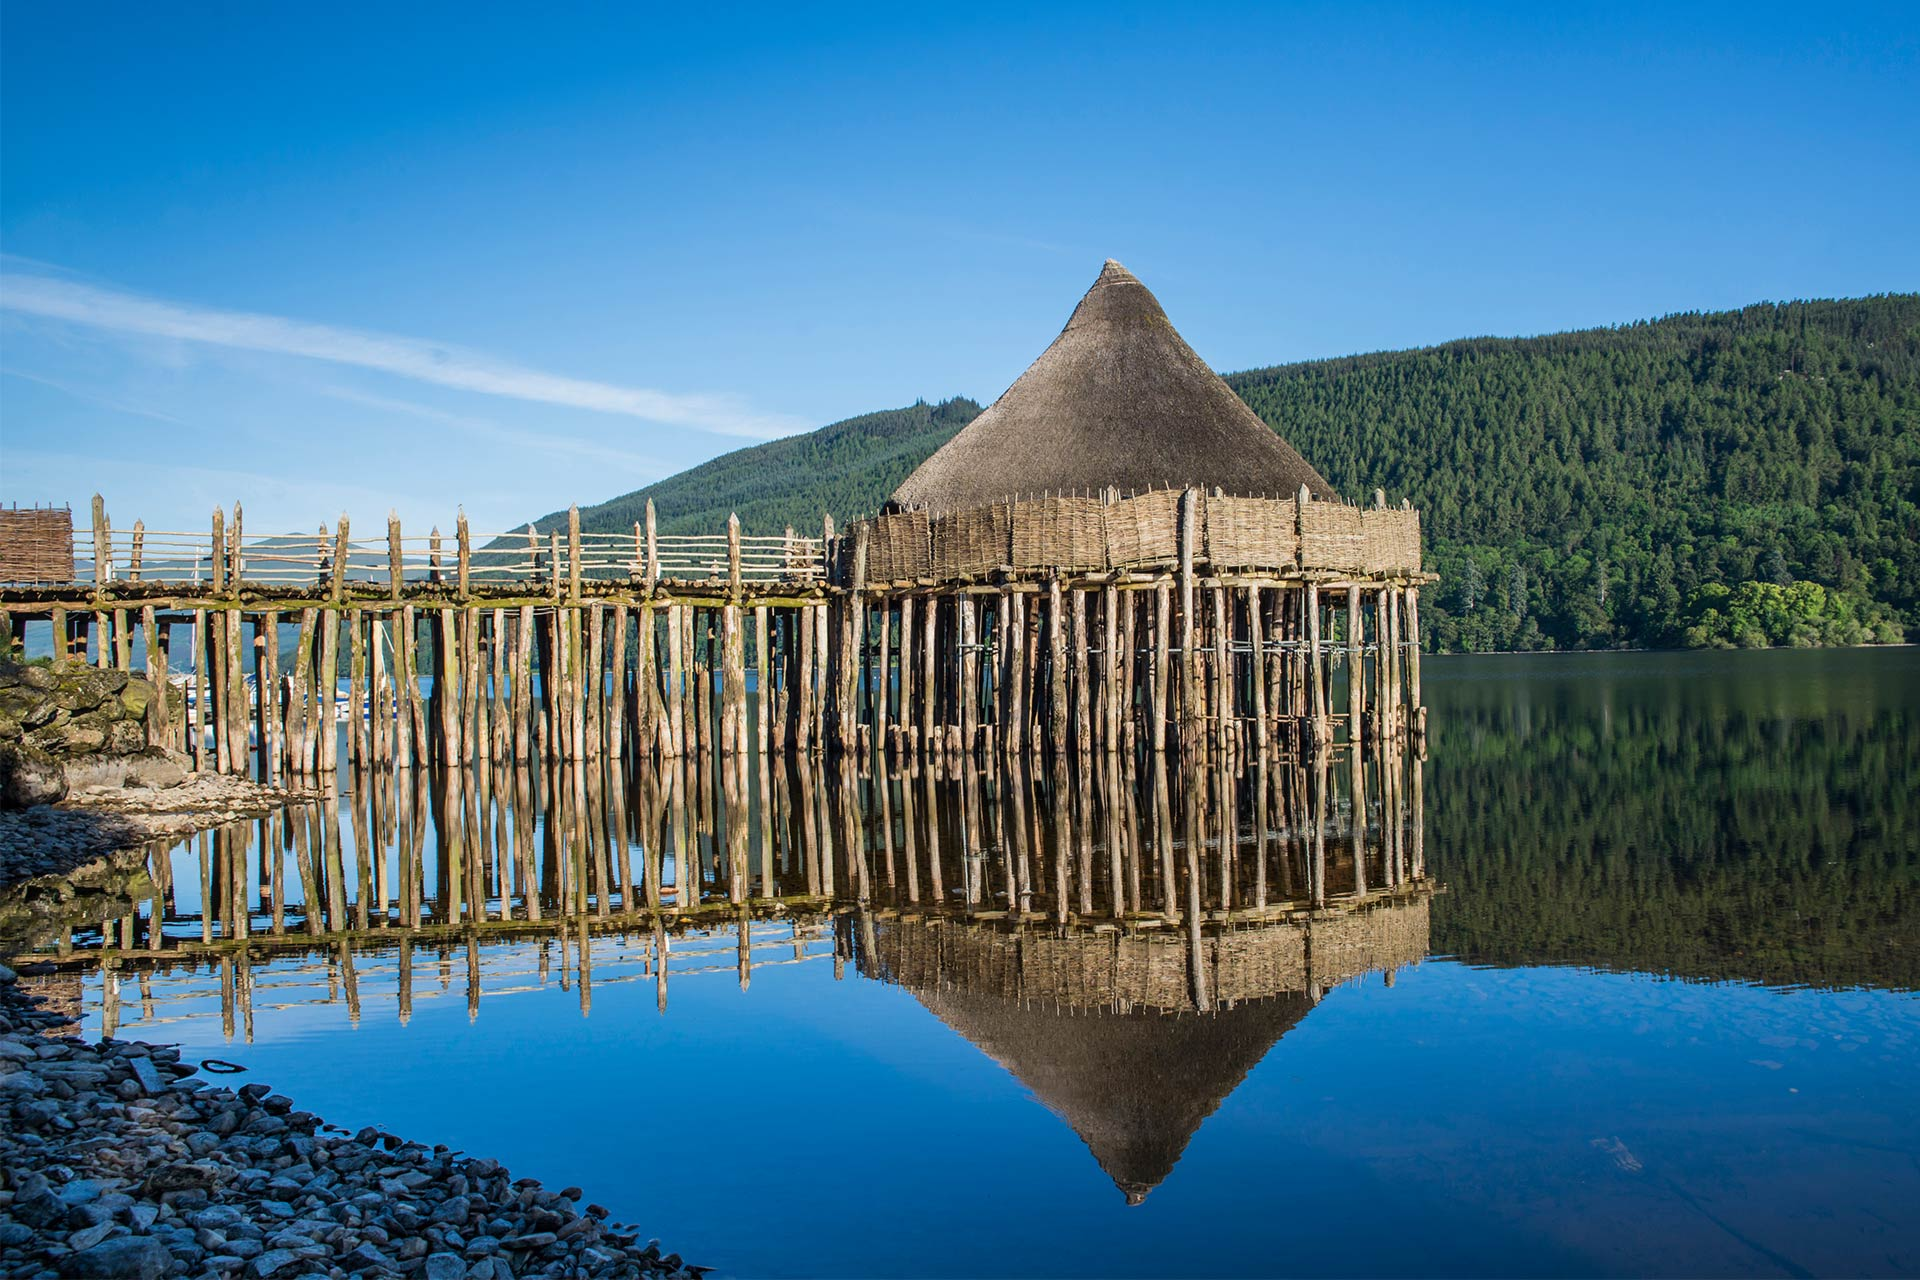 Scottish Crannog Centre, Loch Tay, Perthshire © Kenny Lam